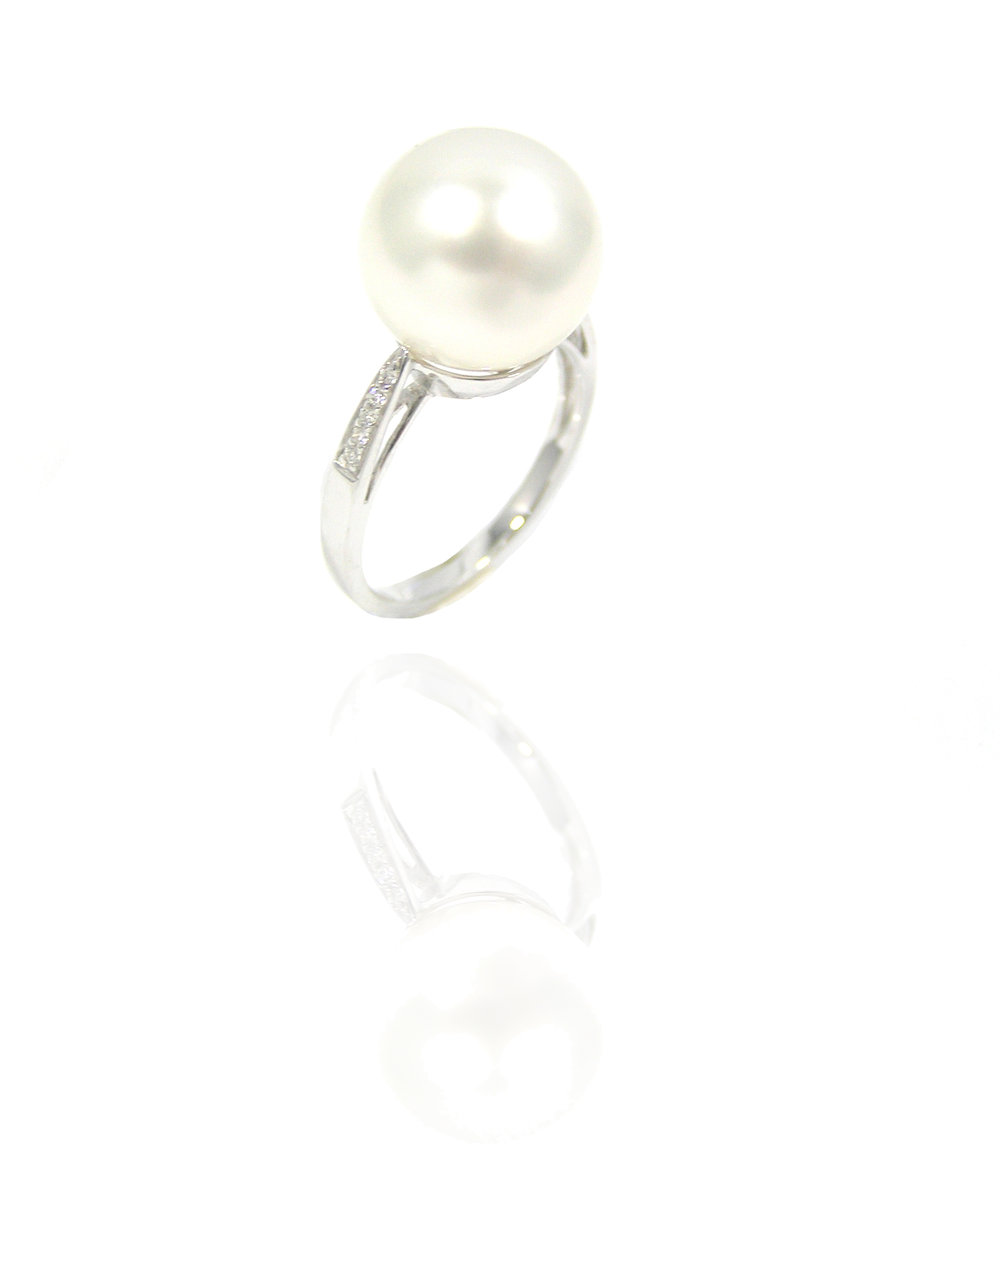 Pearl diamond ring!